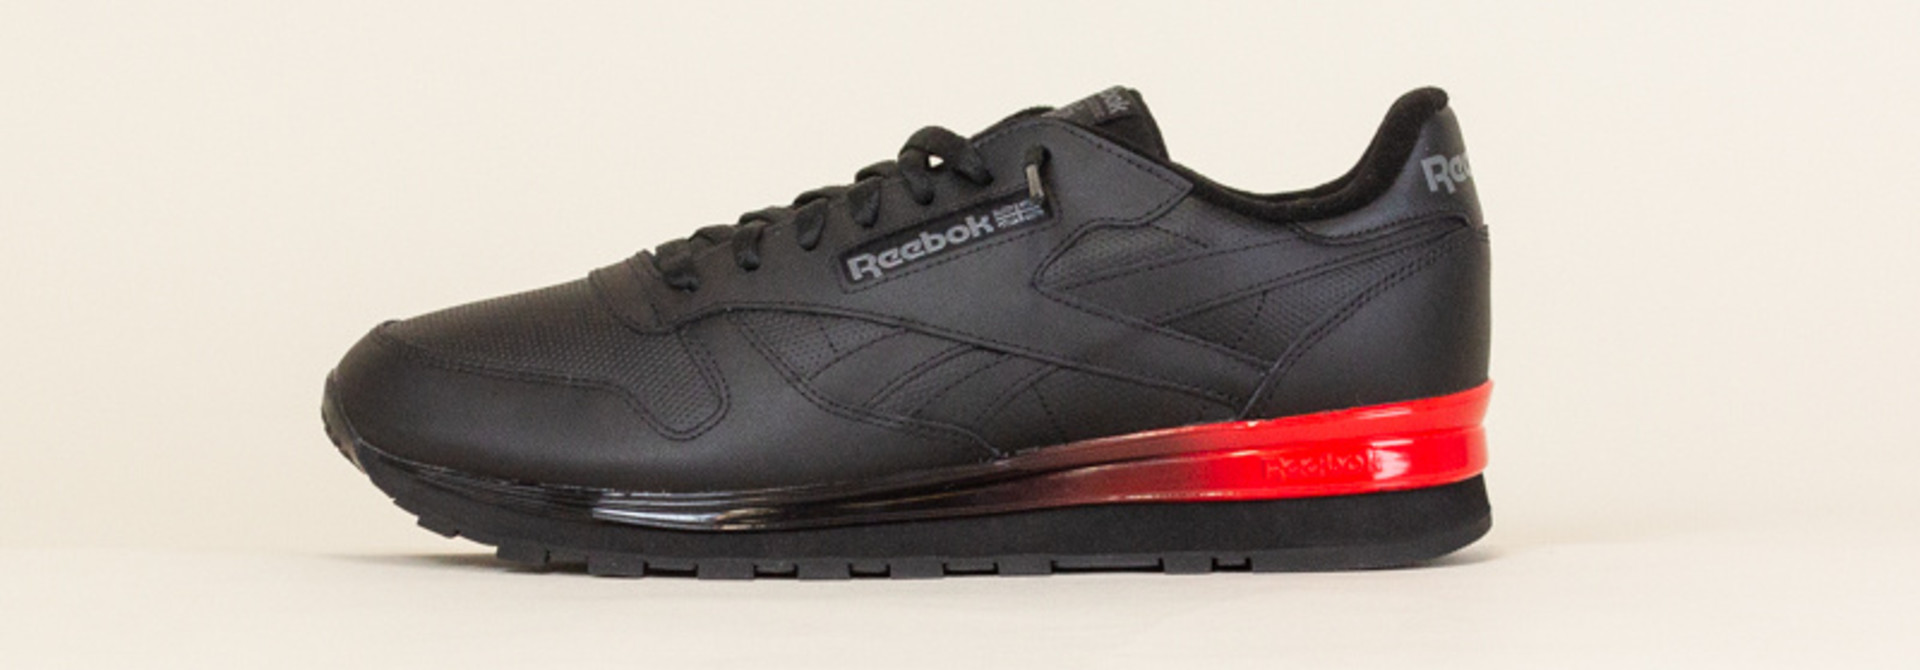 Reebok Classic Leather - Black/Red